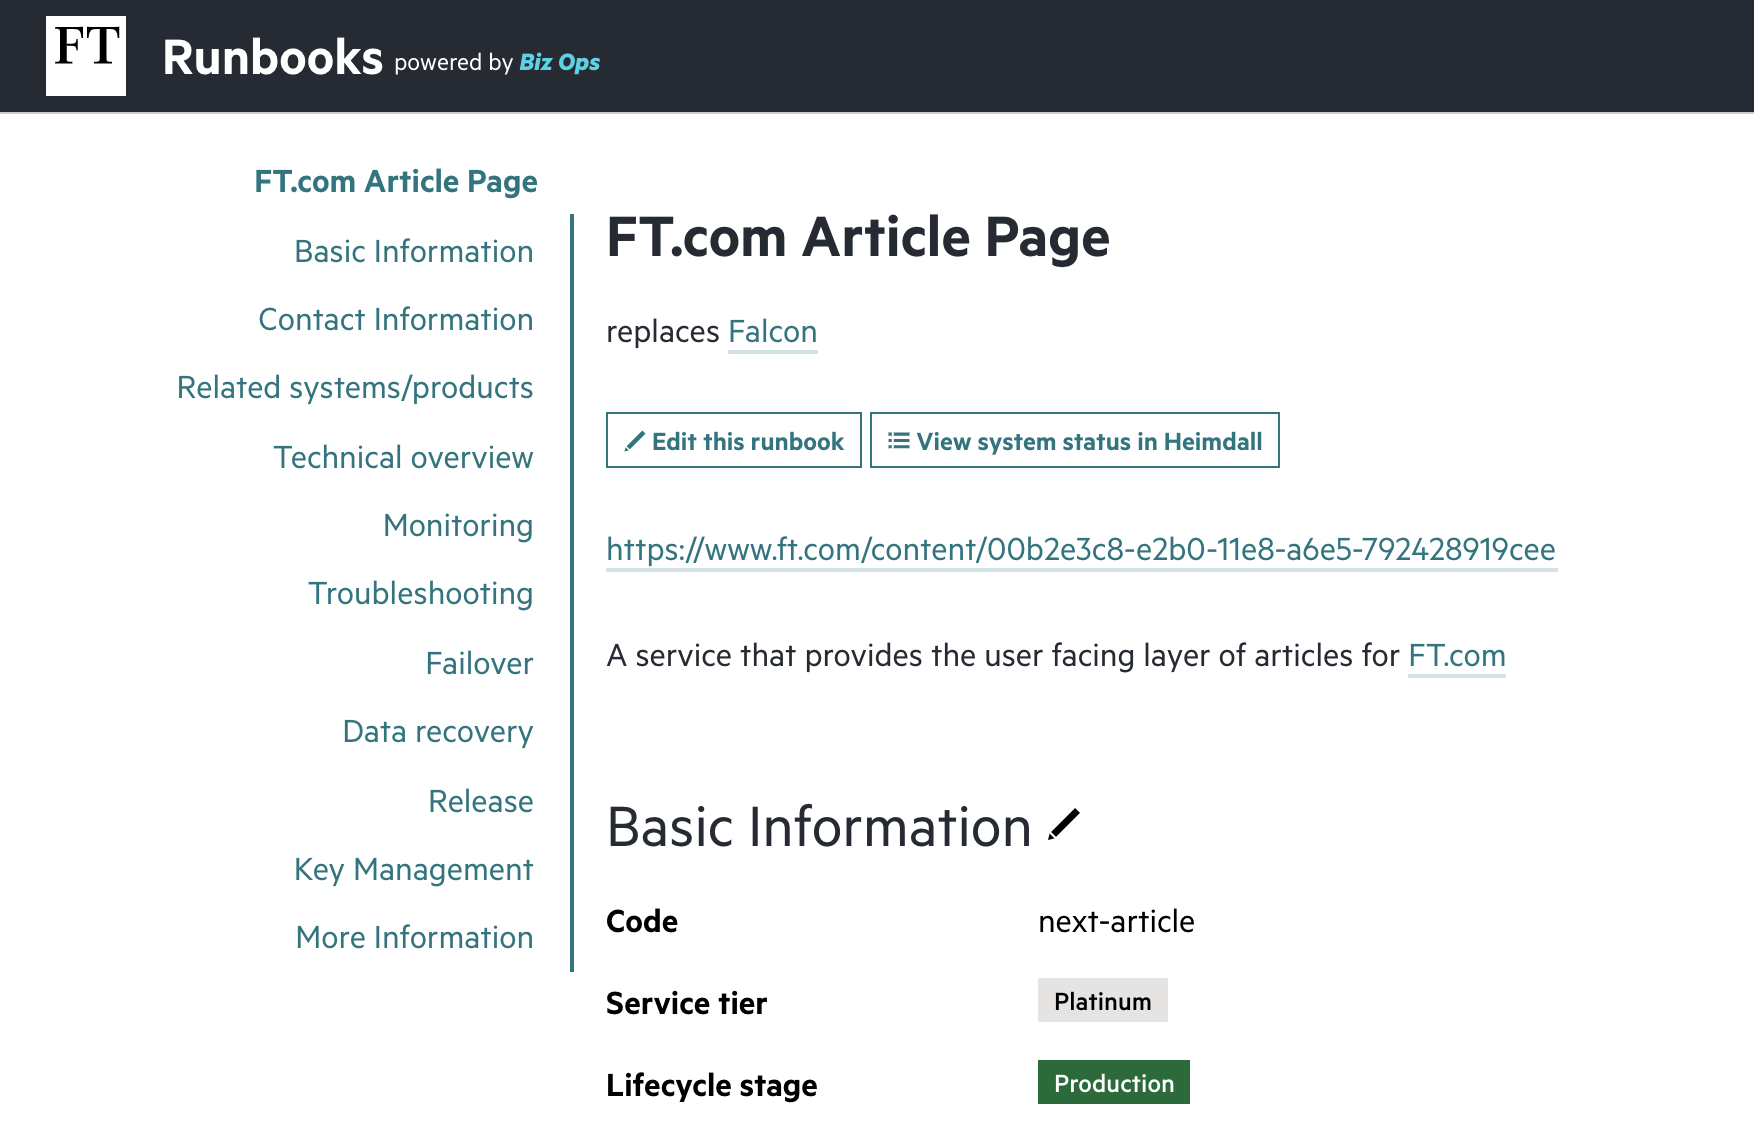 Part of an existing FT.com runbook